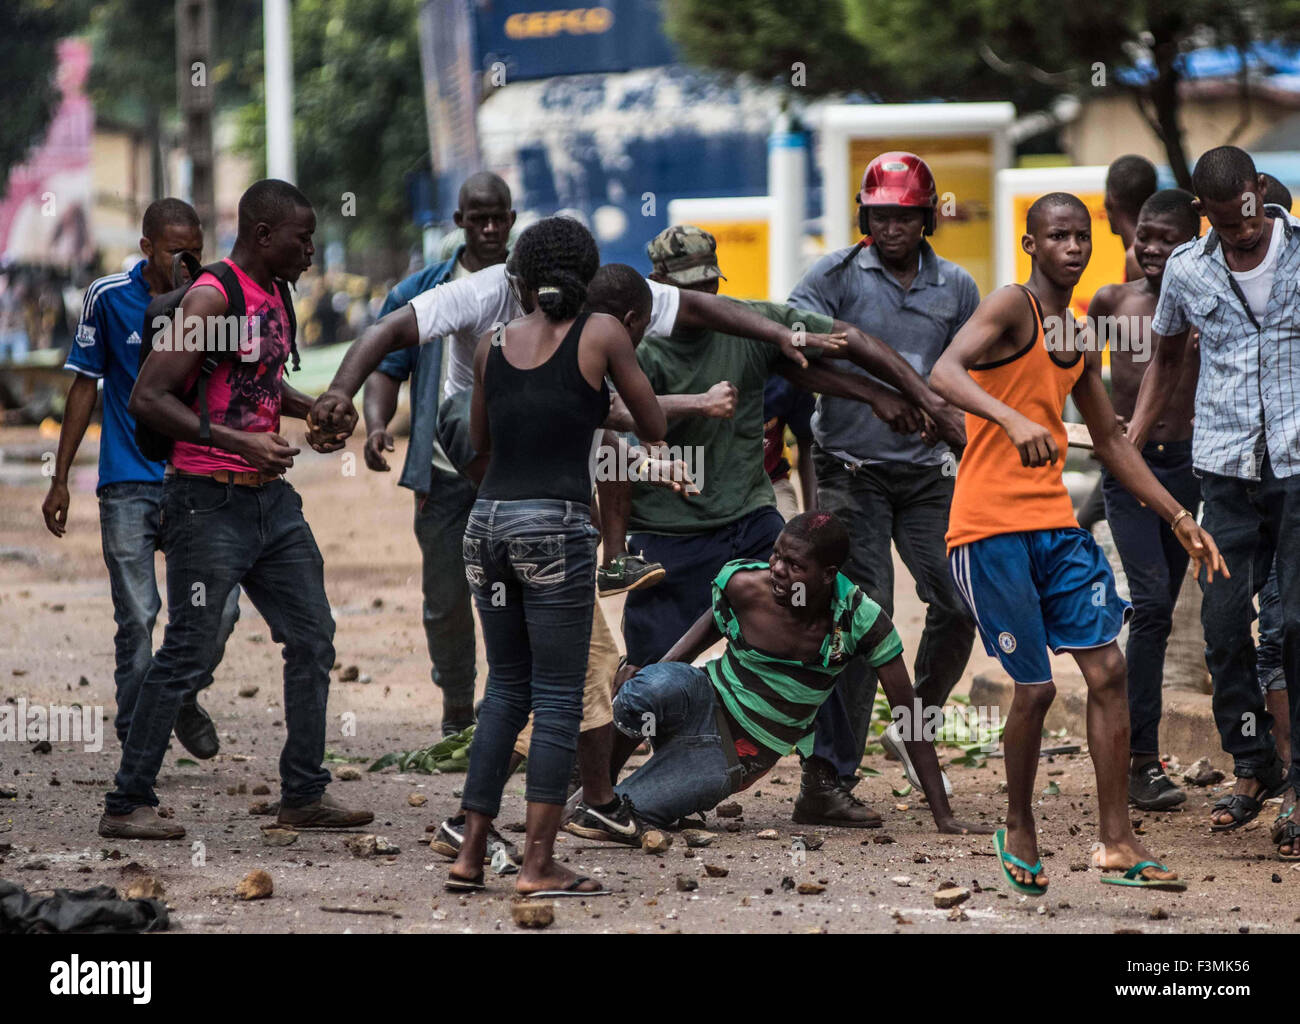 A man is beaten up during political violence in Conakry, Guinea, ahead of  elections in 2010.